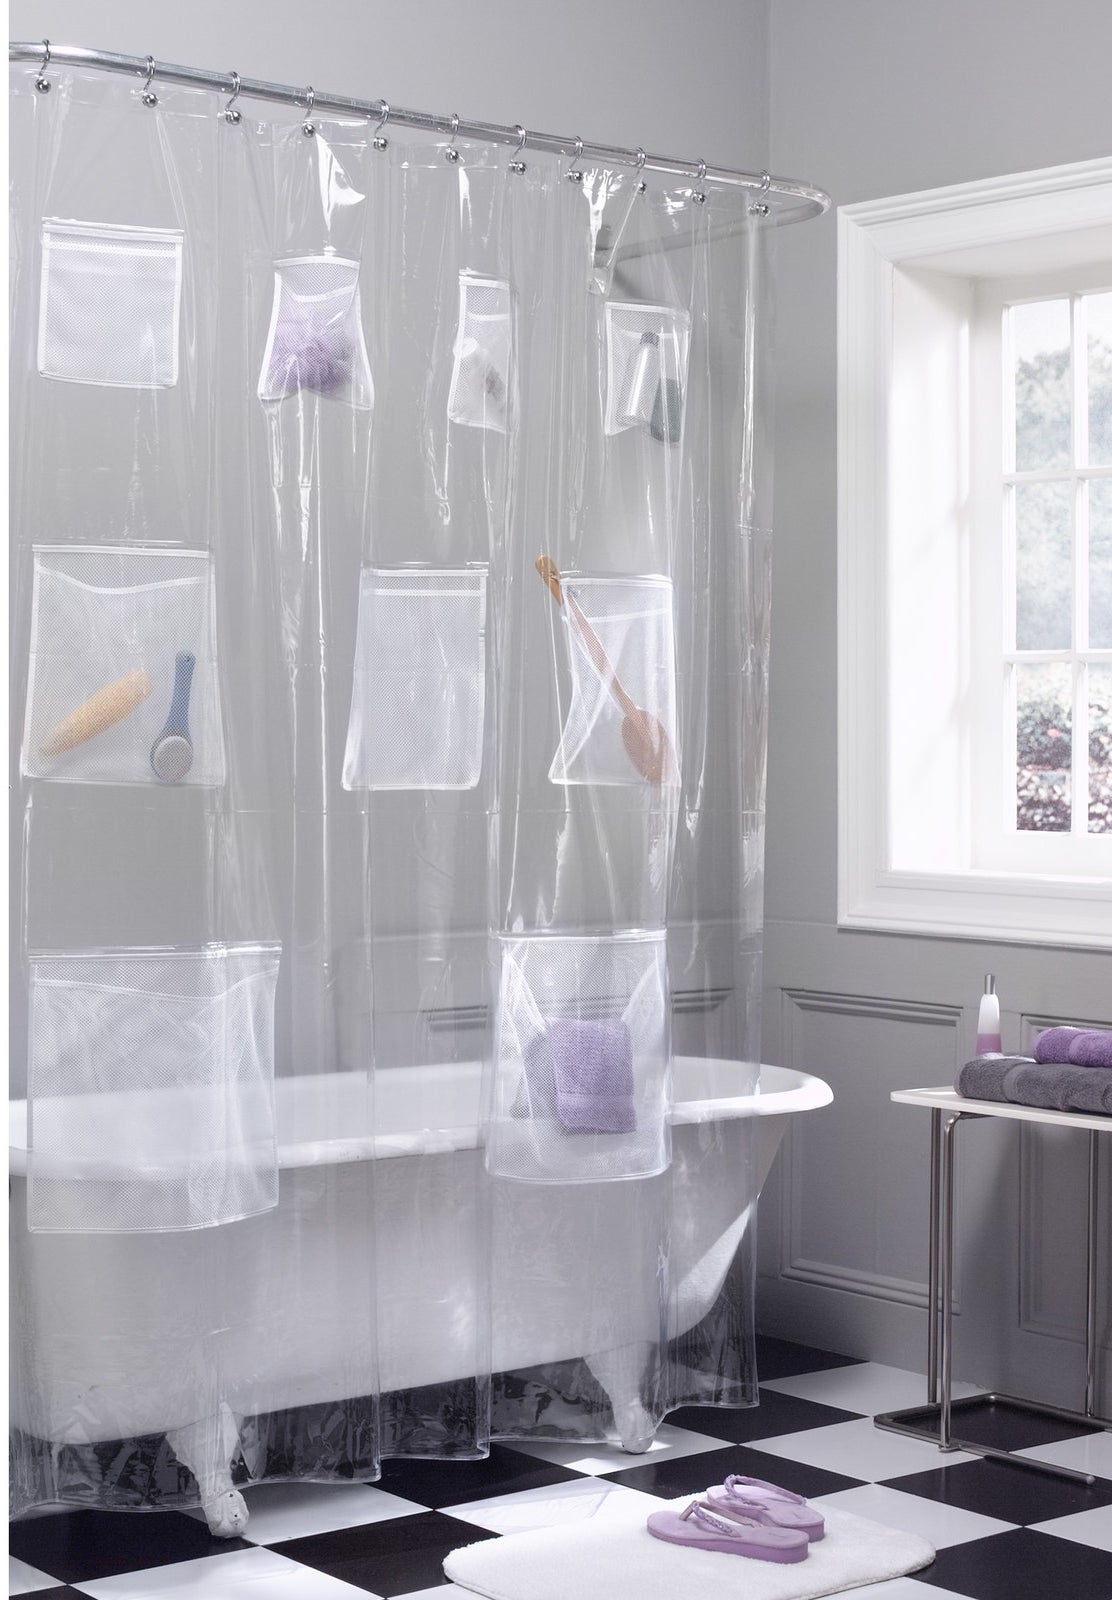 Walmart Bathroom Shower Curtains: 25 Things From Walmart That'll Give Your Home A Major Upgrade